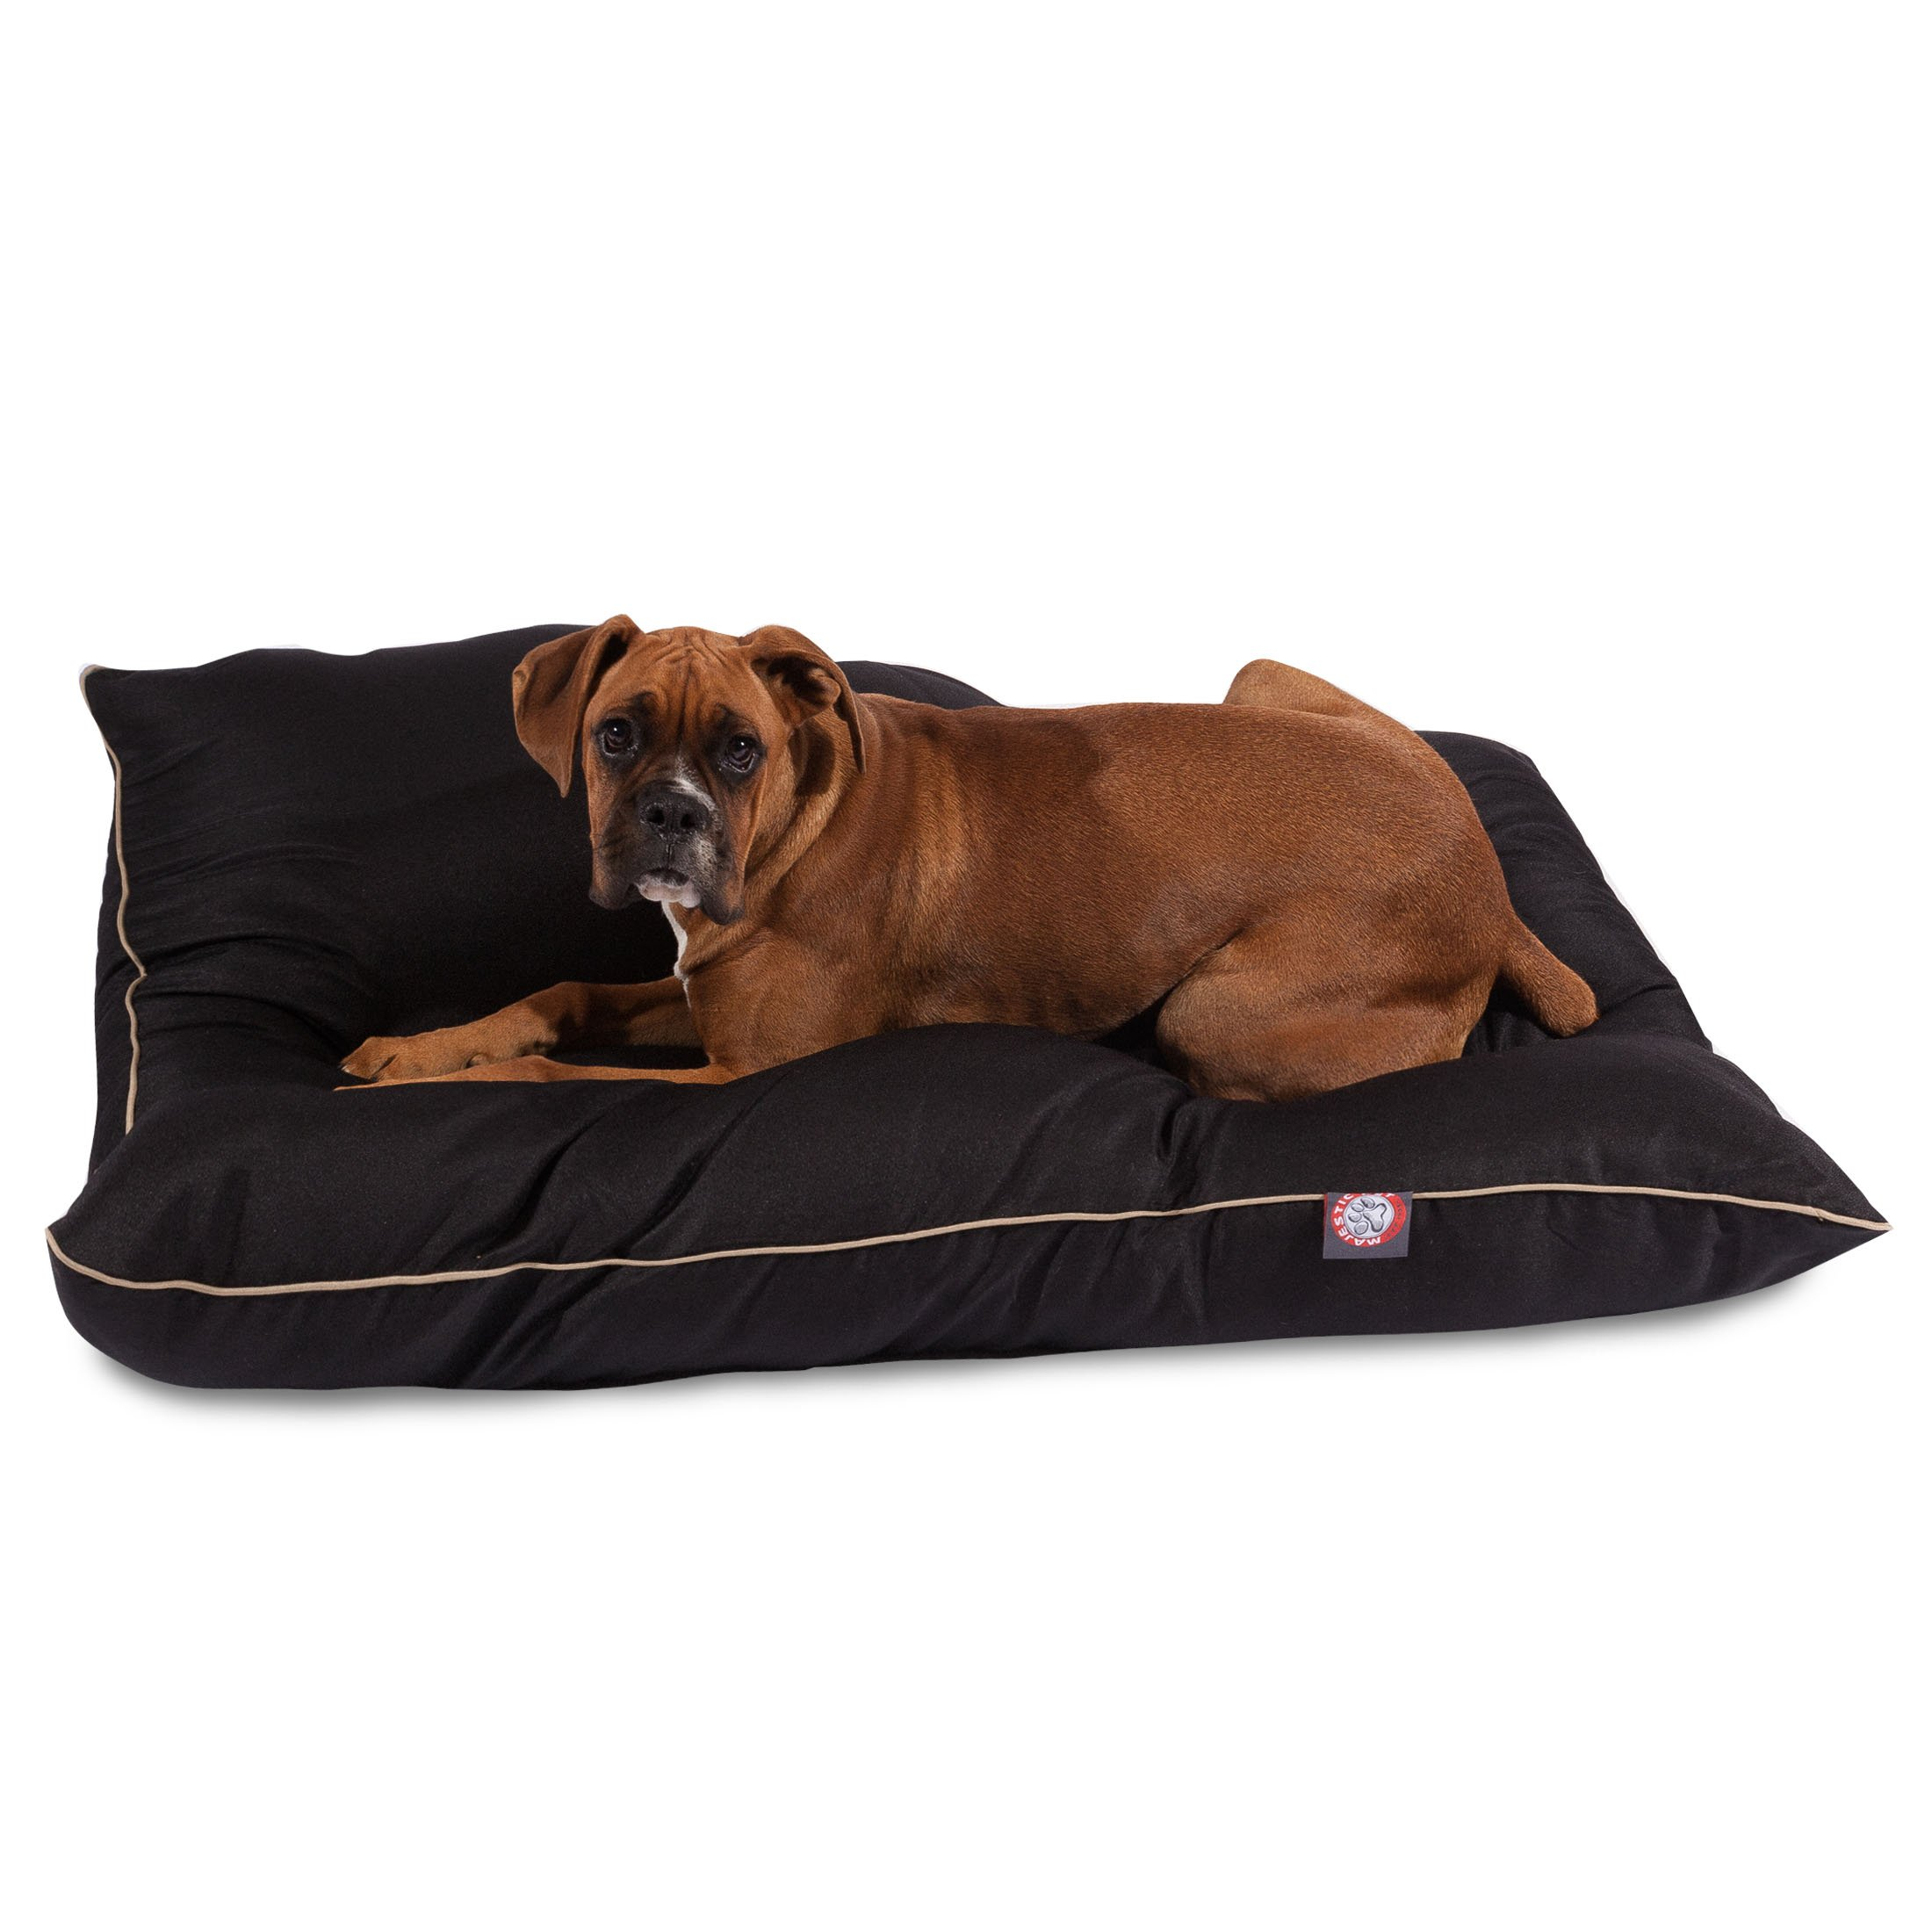 couch bed beds dane big great mastiff pet english sofa xxl us cushion dog large puppy itm